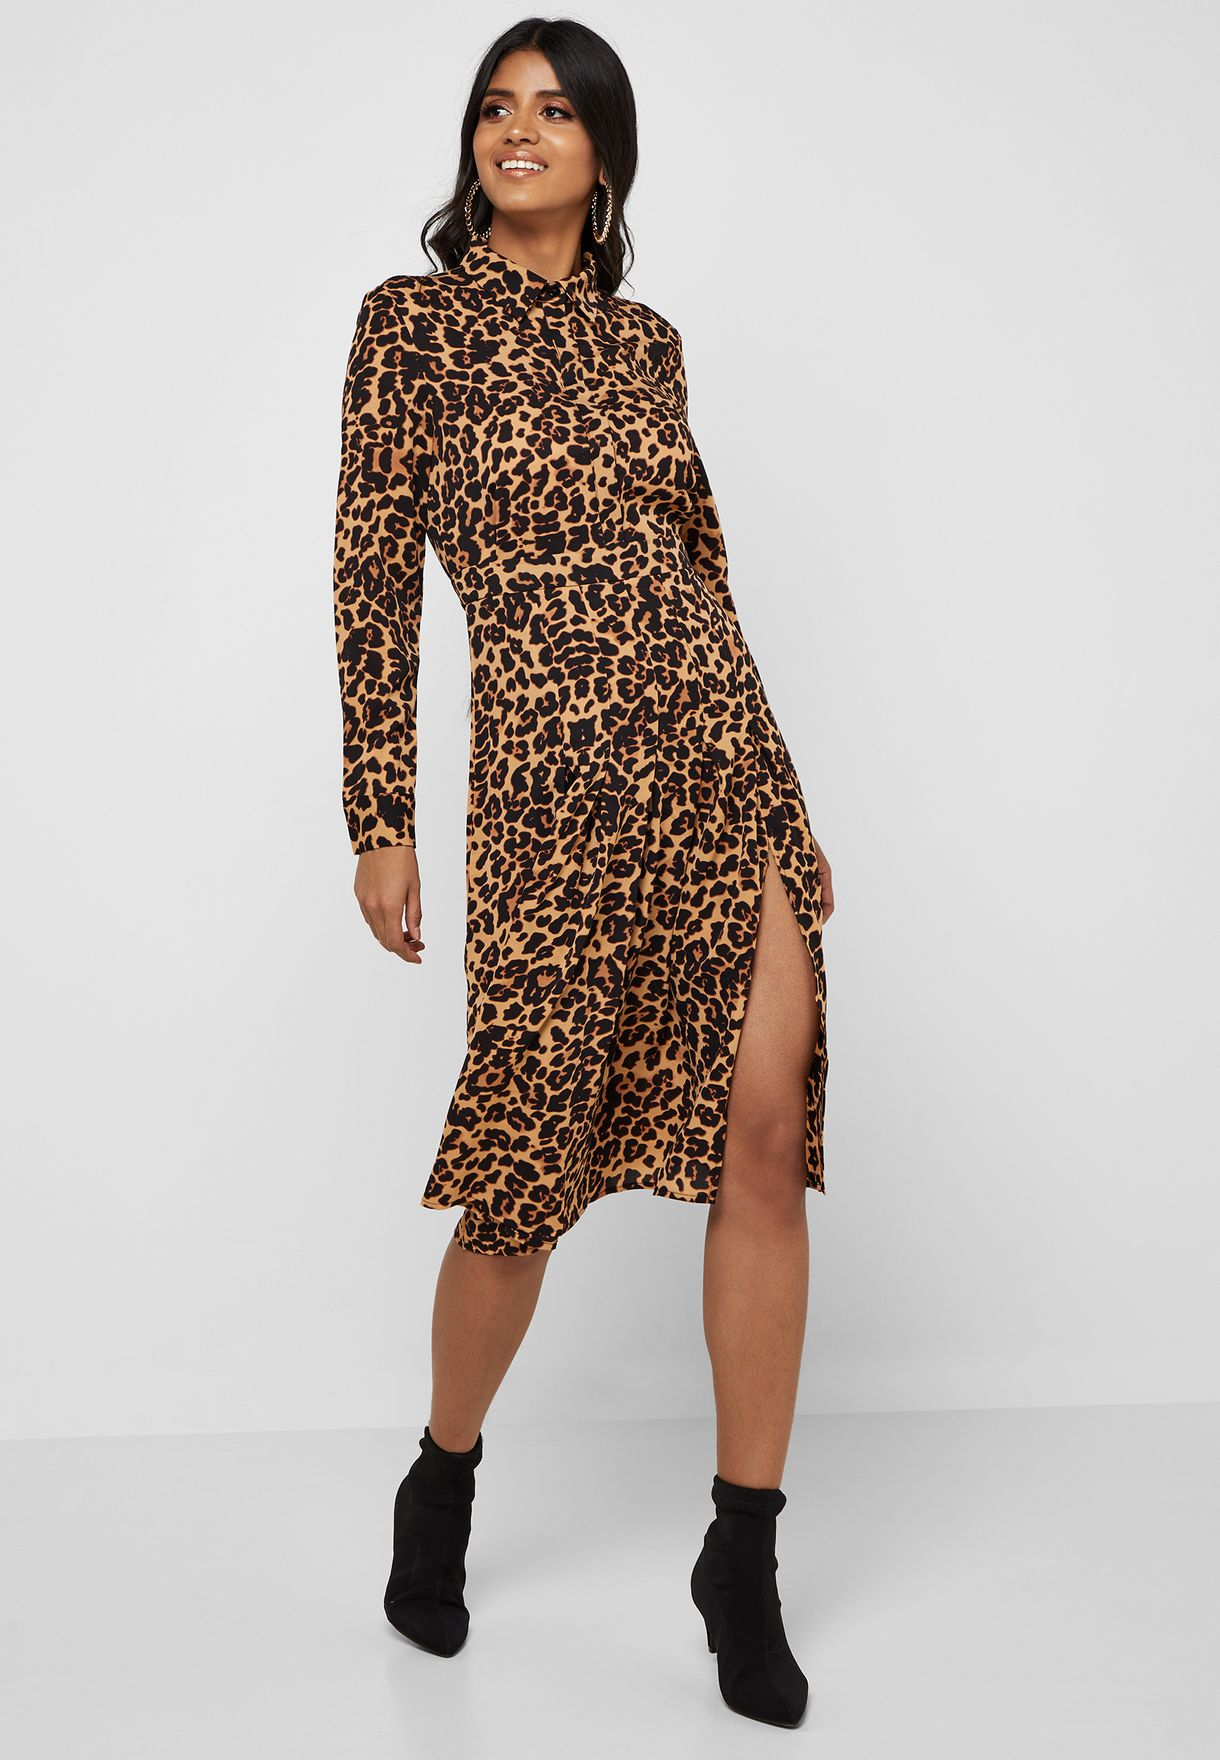 a4c8ad2de090 Shop Missguided prints Side Split Leopard Print Shirt Dress DD918040 ...